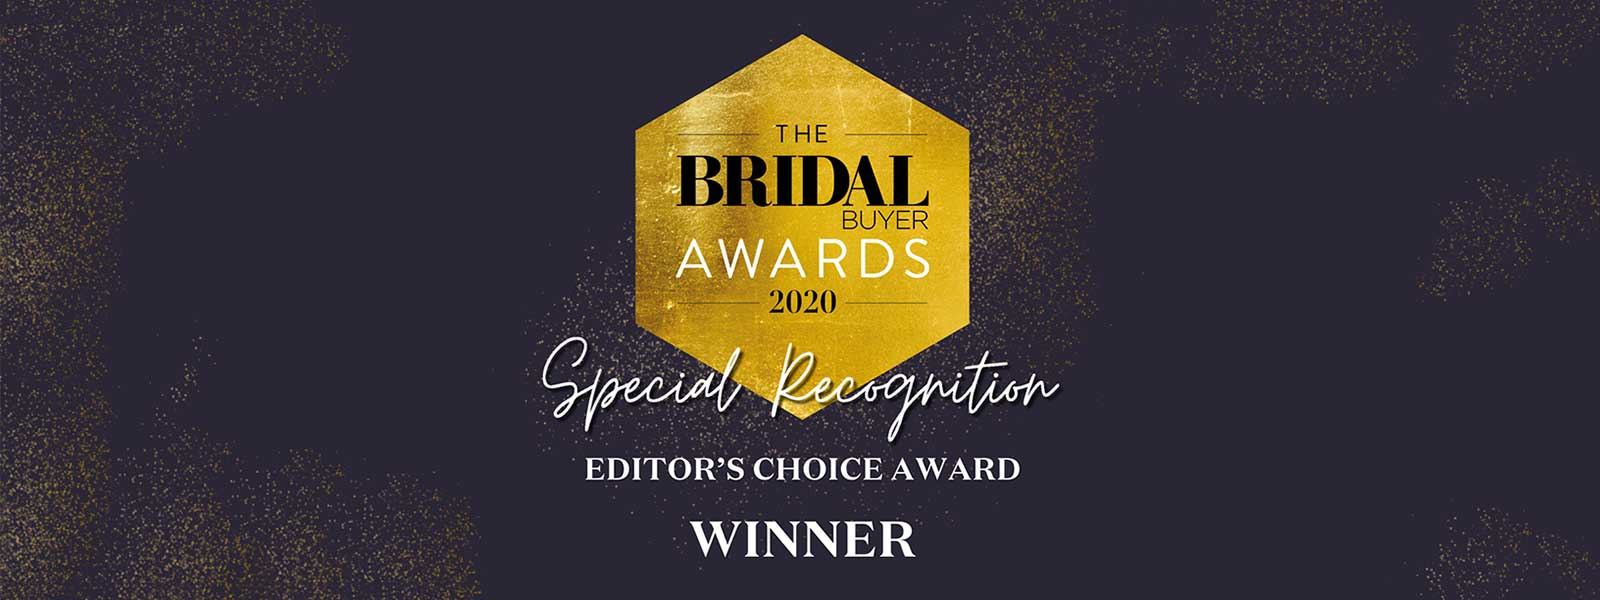 Sanyukta Shrestha Wins BRIDAL BUYER 'EDITOR'S CHOICE AWARD 2020'